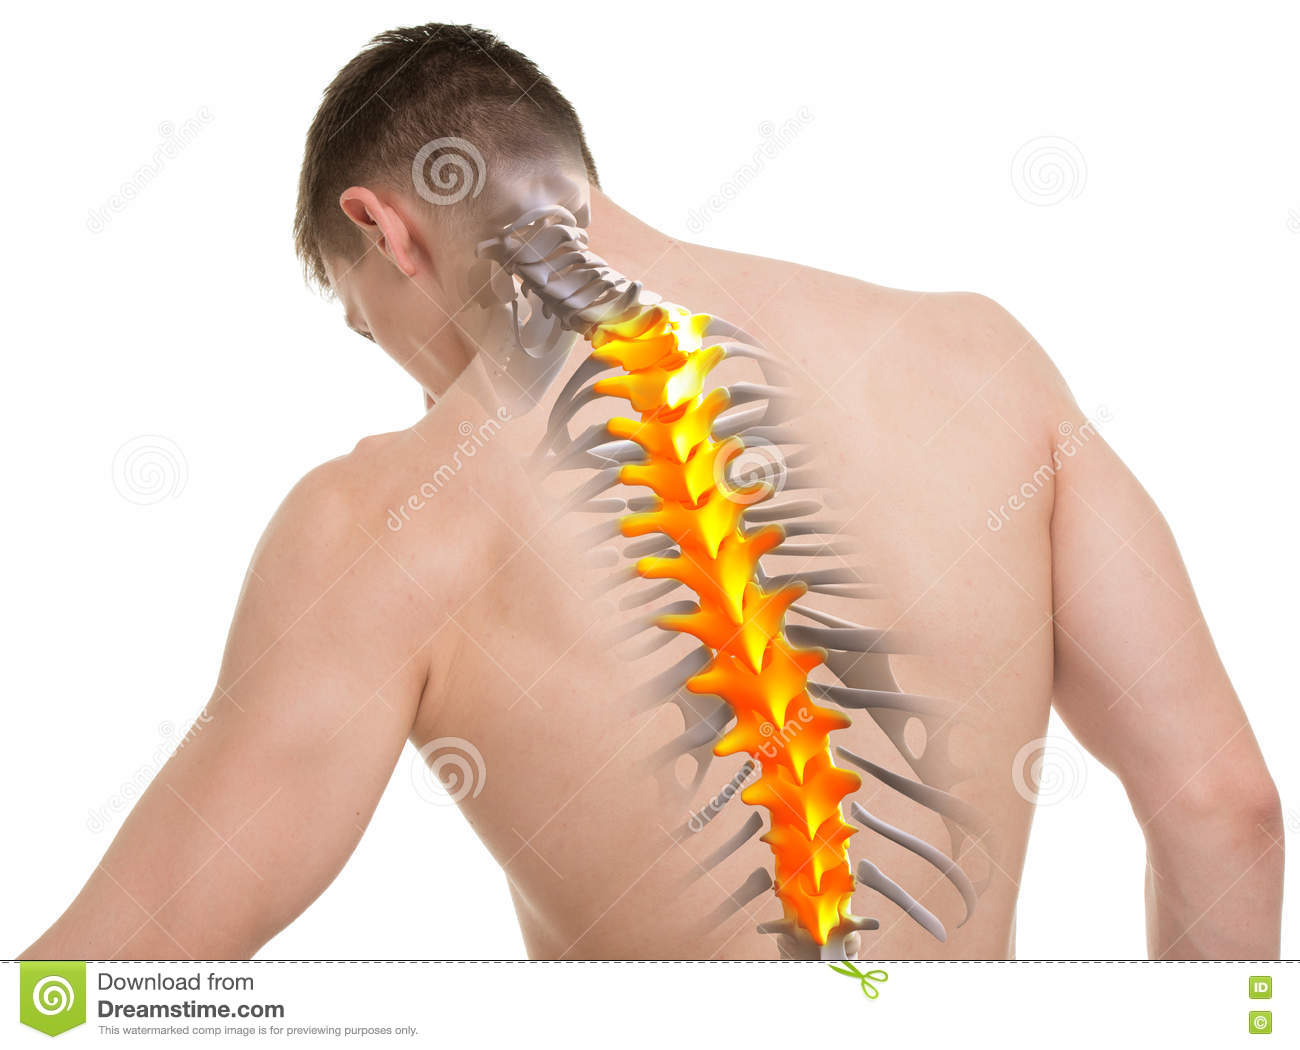 Thoracic Spine Anatomy Isolated On White Stock Photo - Image of ...